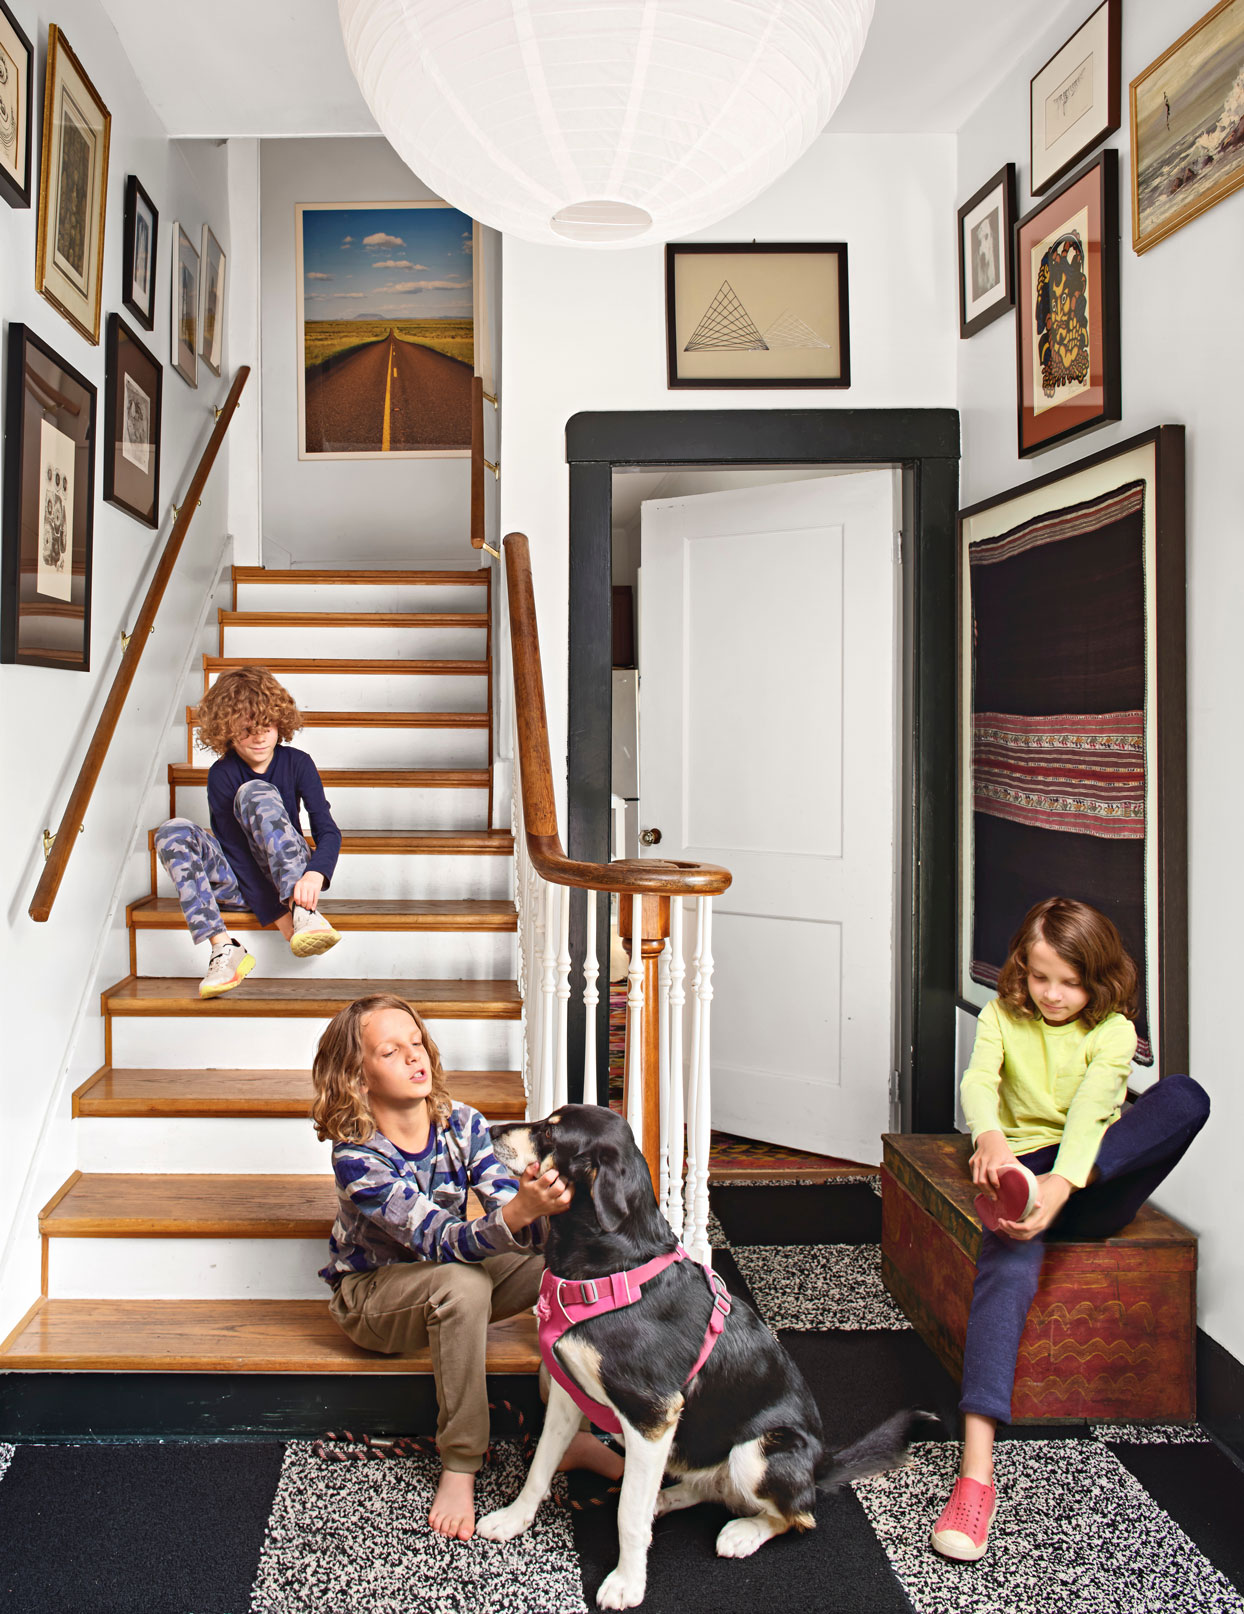 MacPhail boys and dog in entryway